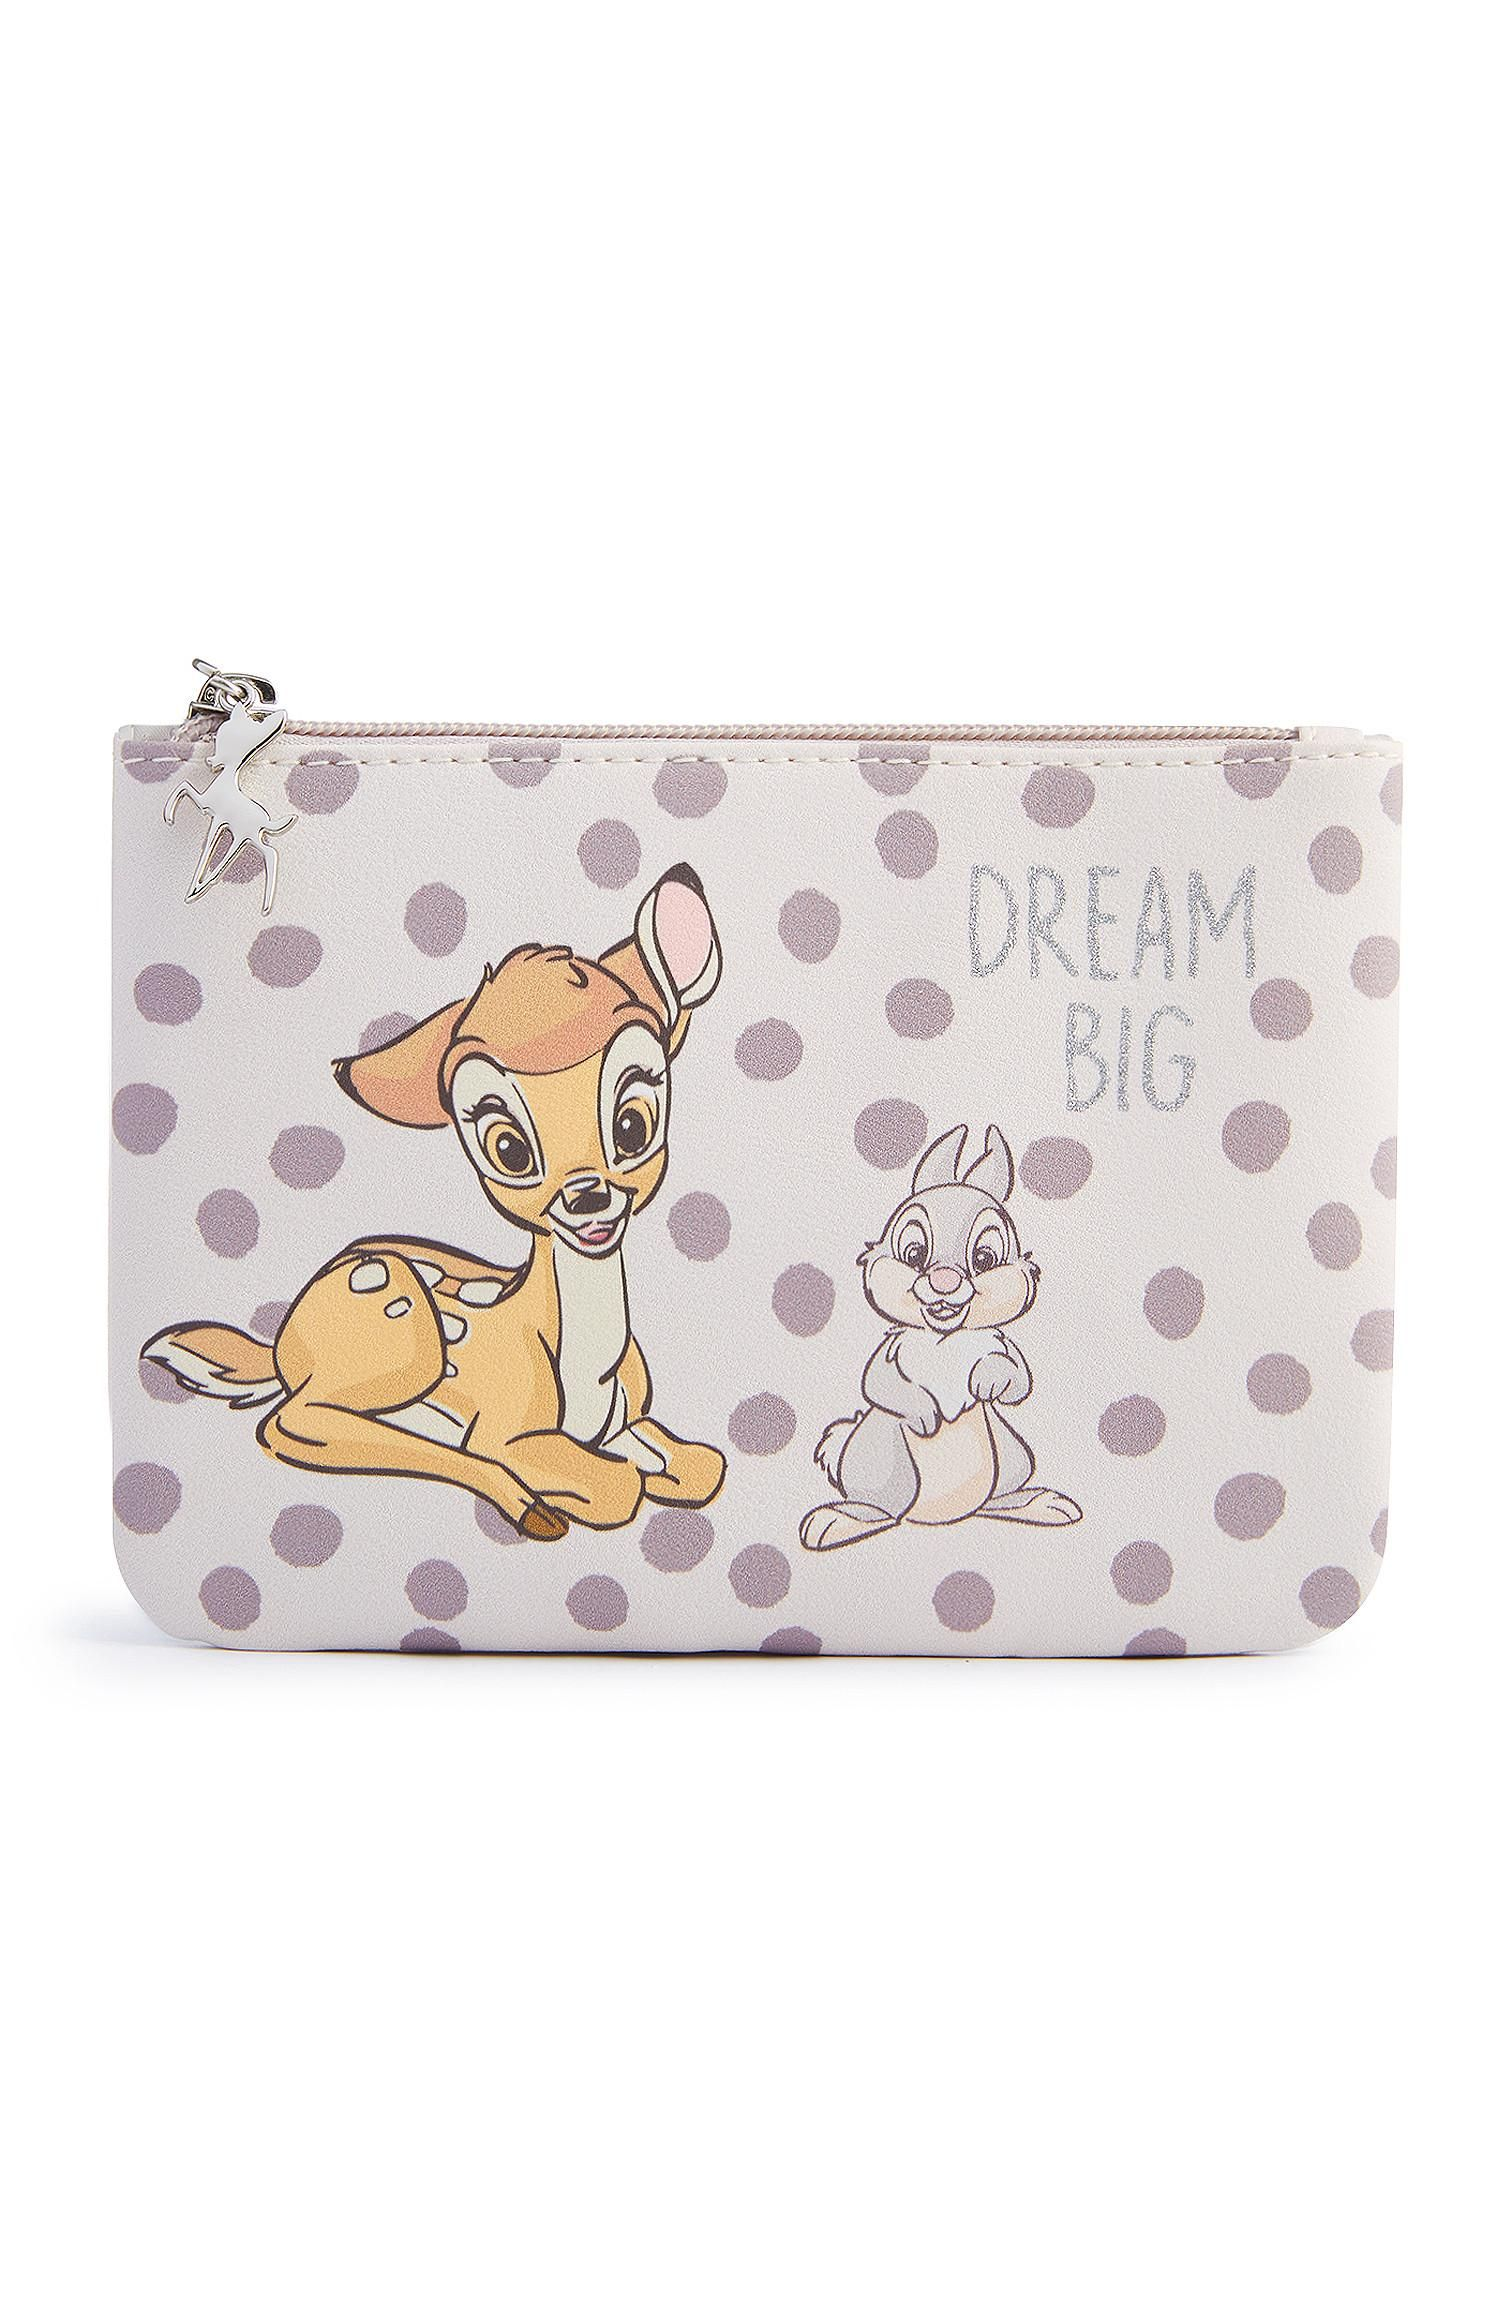 BNWT Girl/'s DISNEY THUMPER RABBIT RUCKSACK BACKPACK FROM PRIMARK.